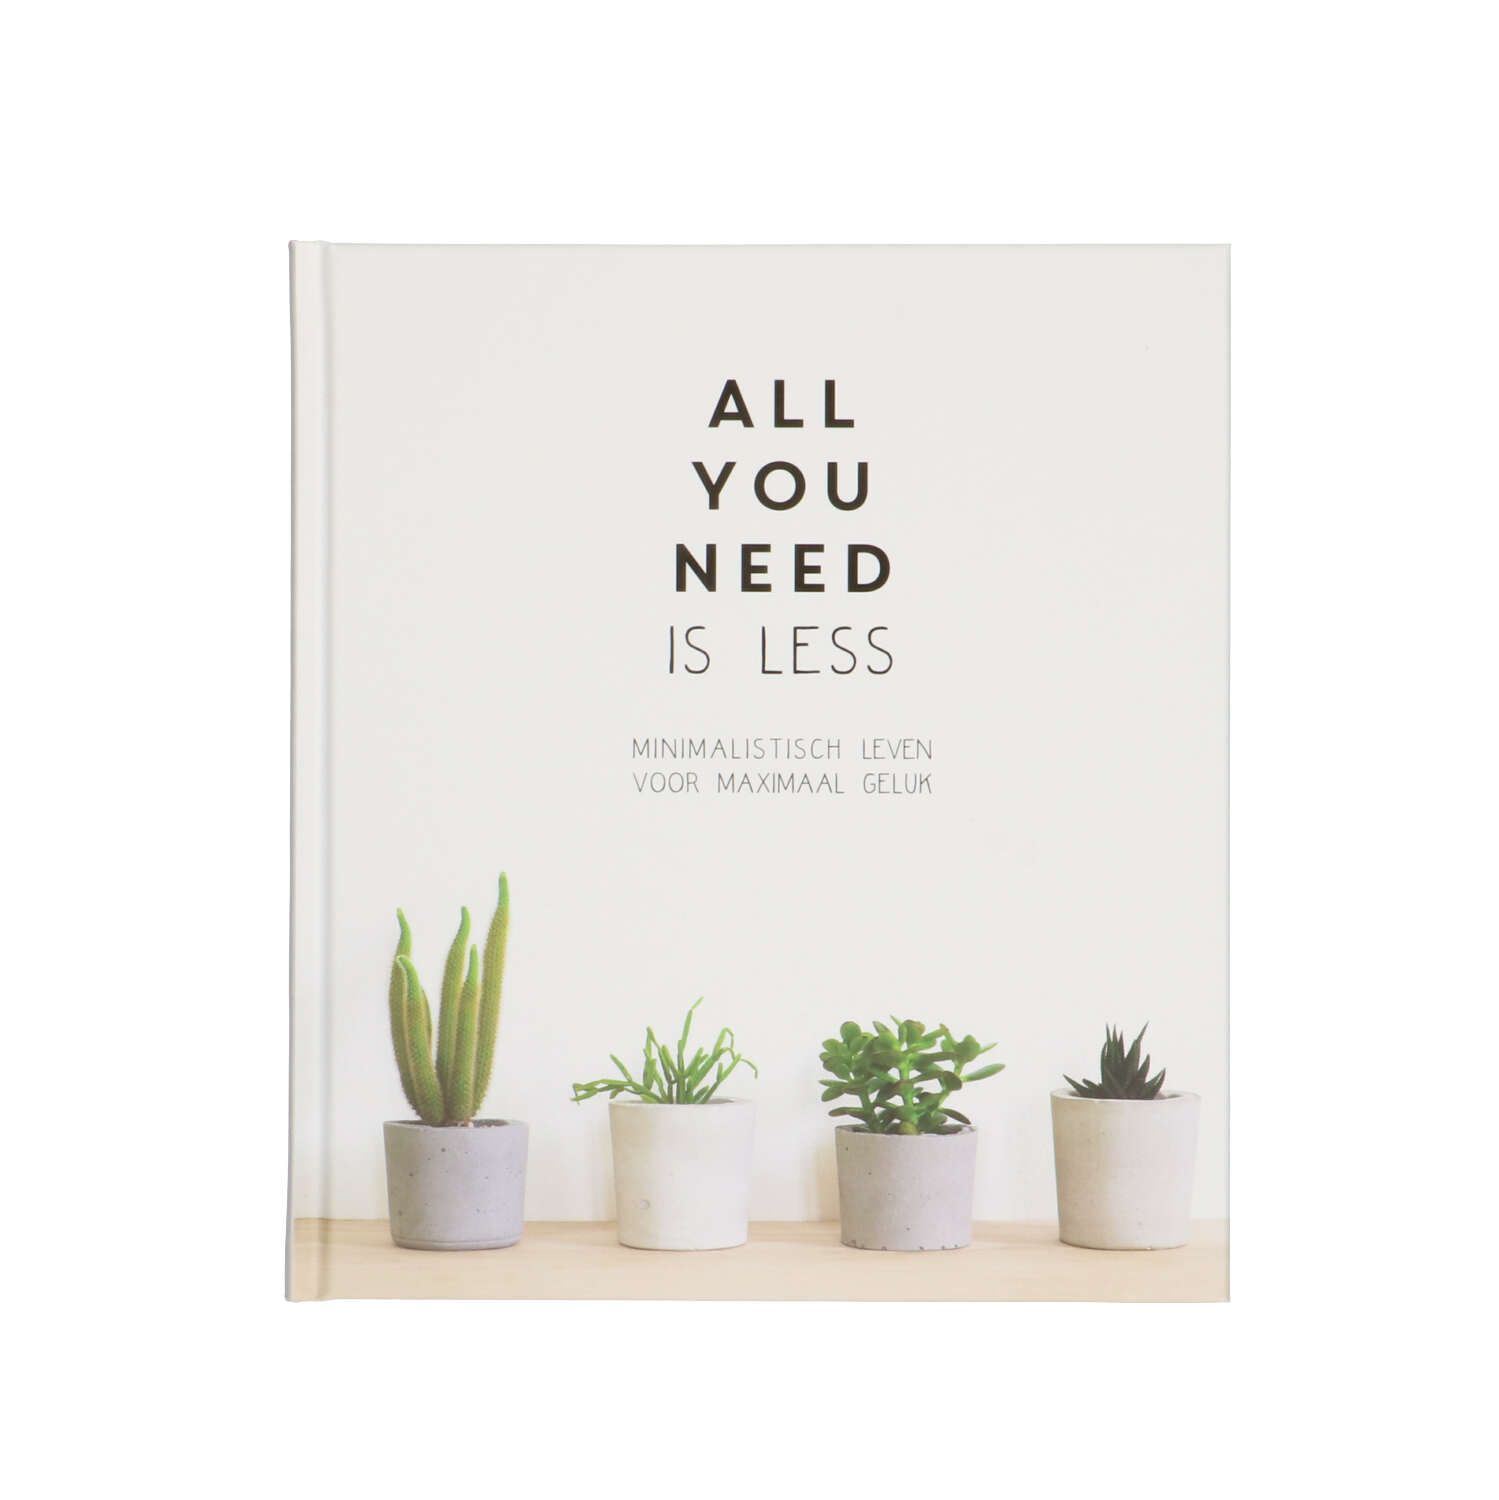 All you need is less Vicki Vrint